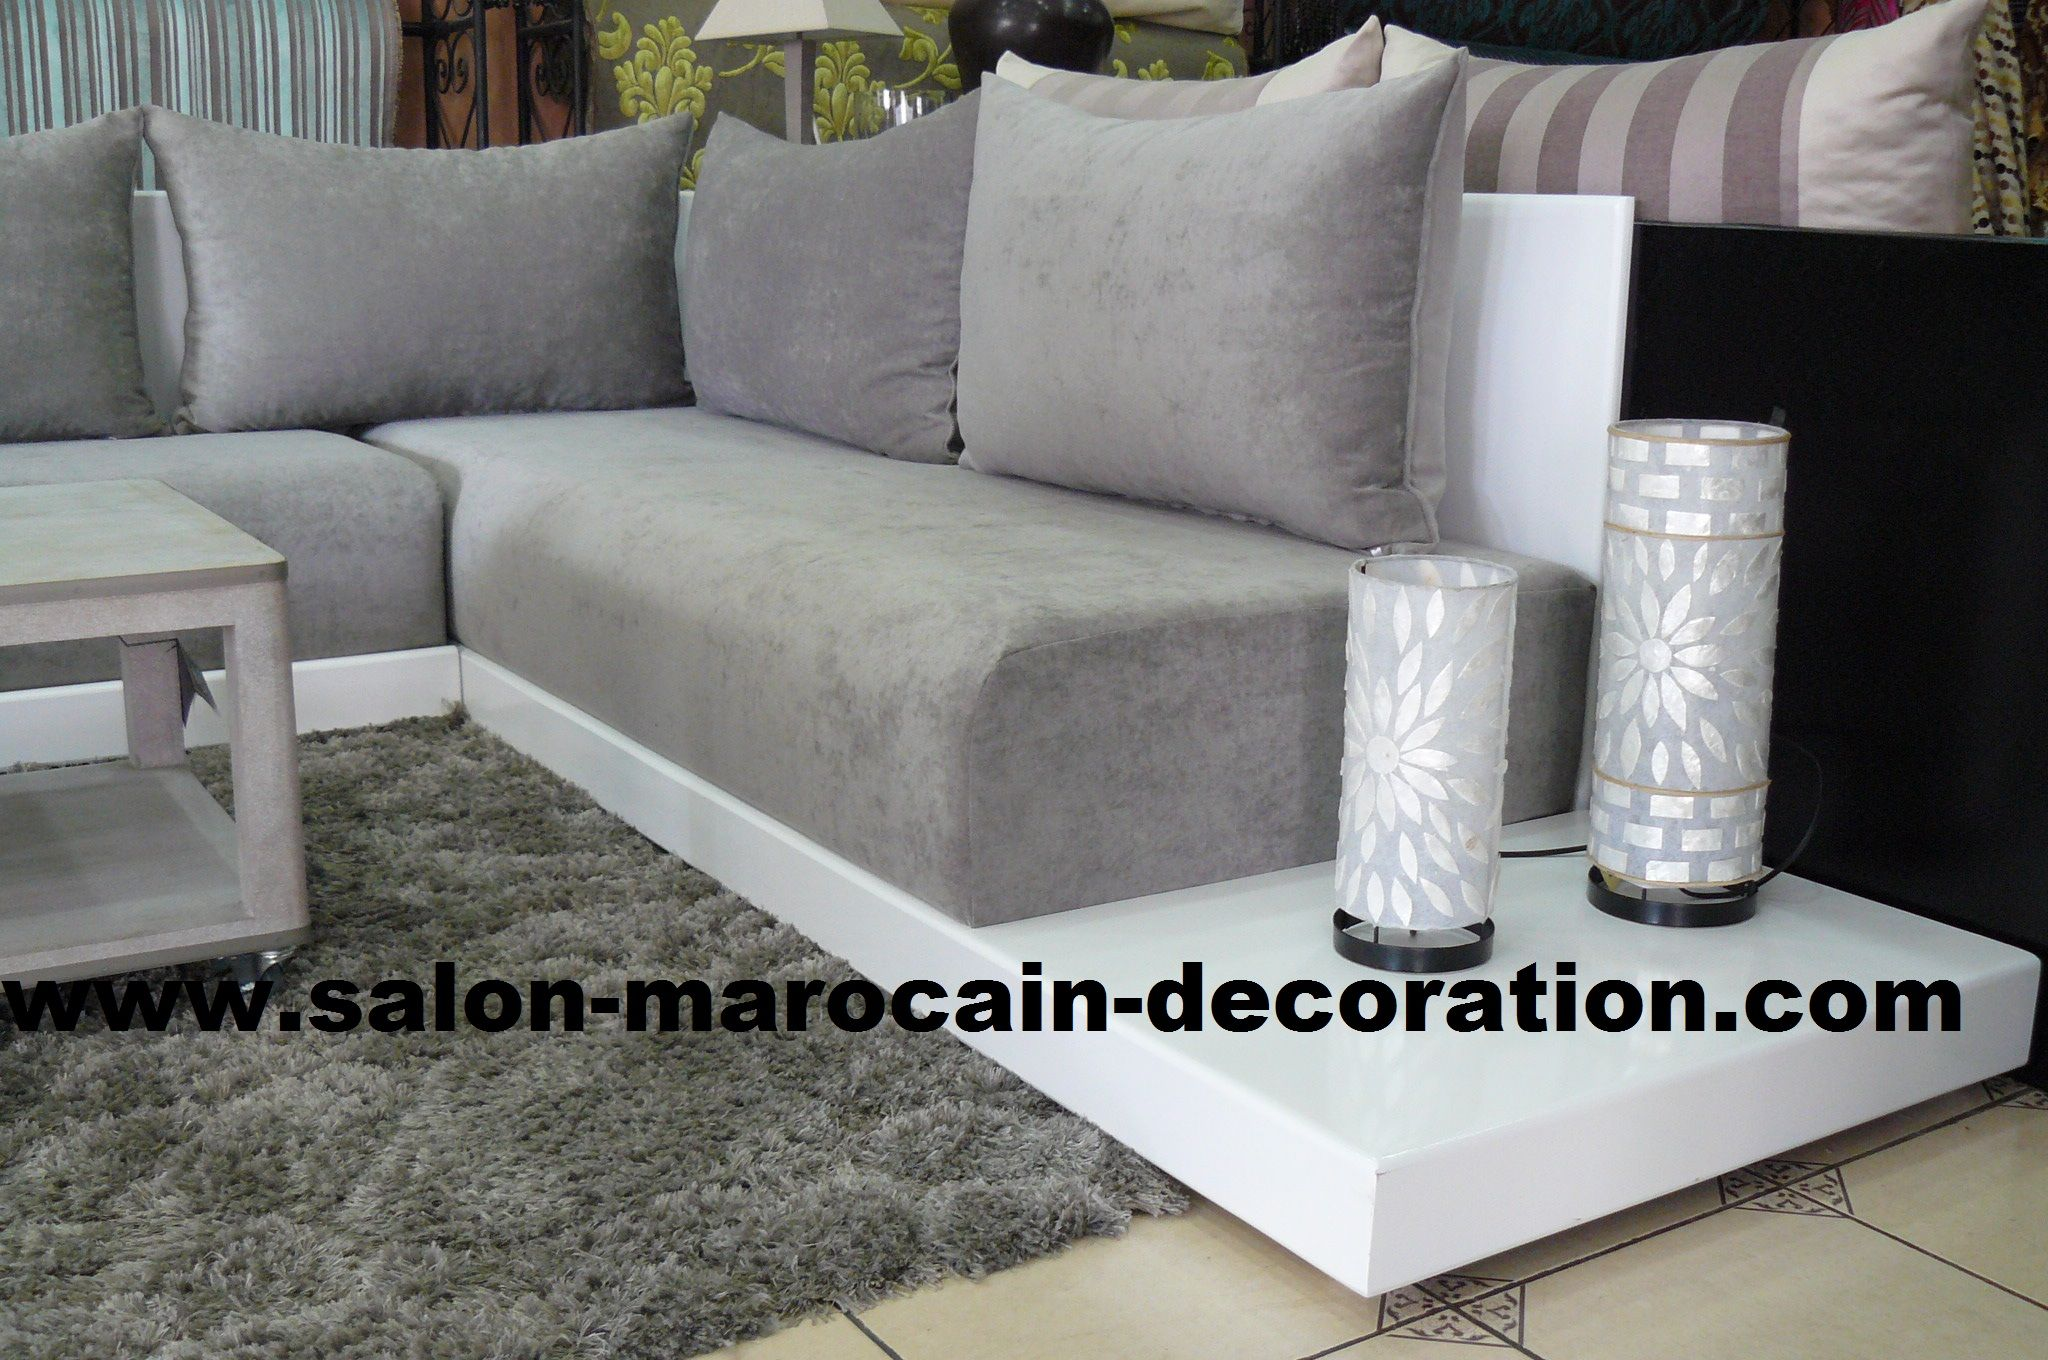 Salon Marocain Blanc Moderne Pin By Amal On Decoration In 2019 Salon Marocain Décoration